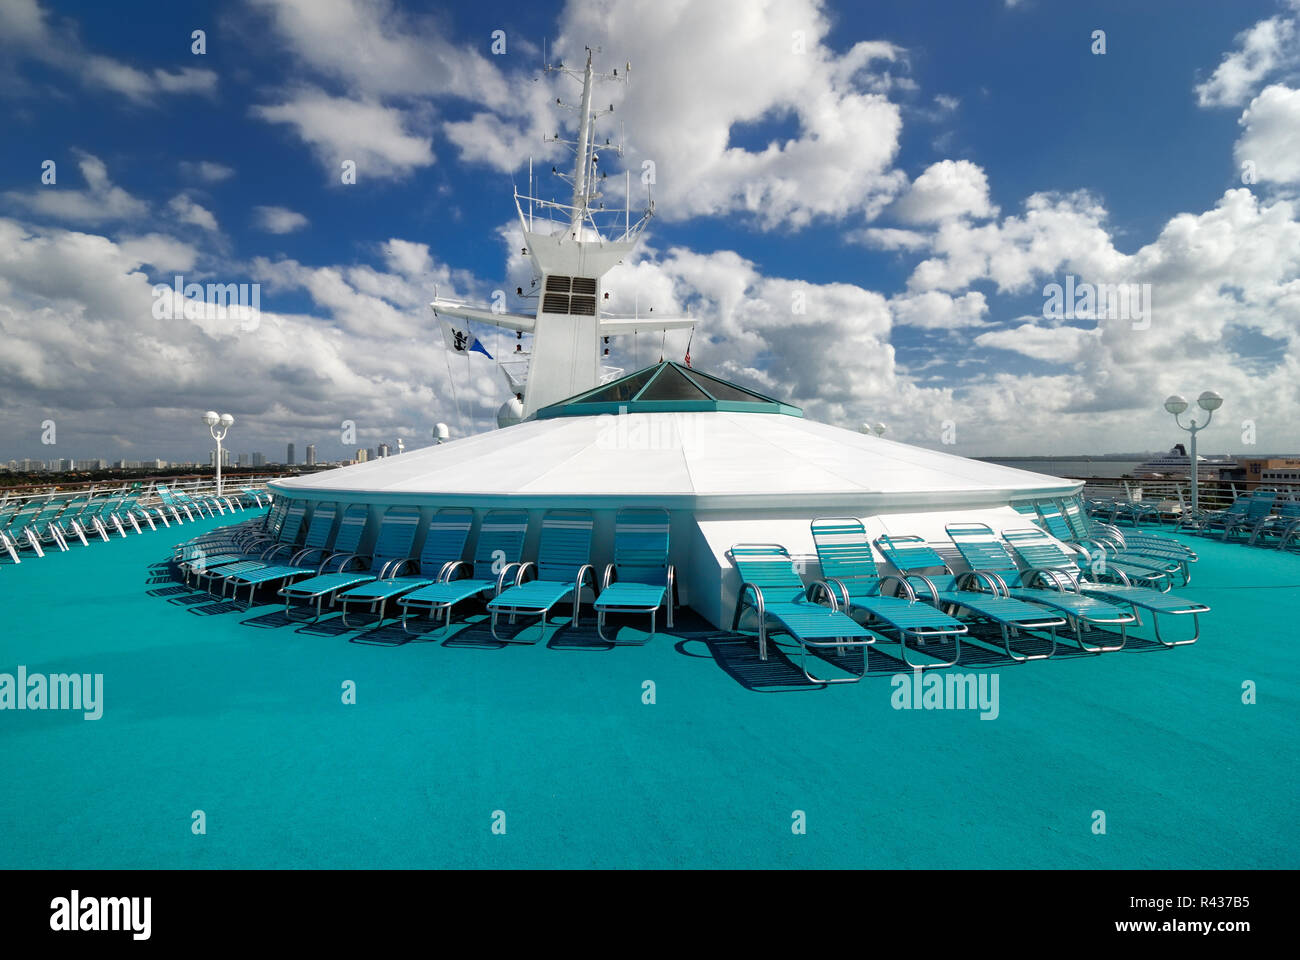 The crow's nest lounge chairs on the upper deck of Royal Caribbean Interational's Majesty of the Seas cruise ship. - Stock Image